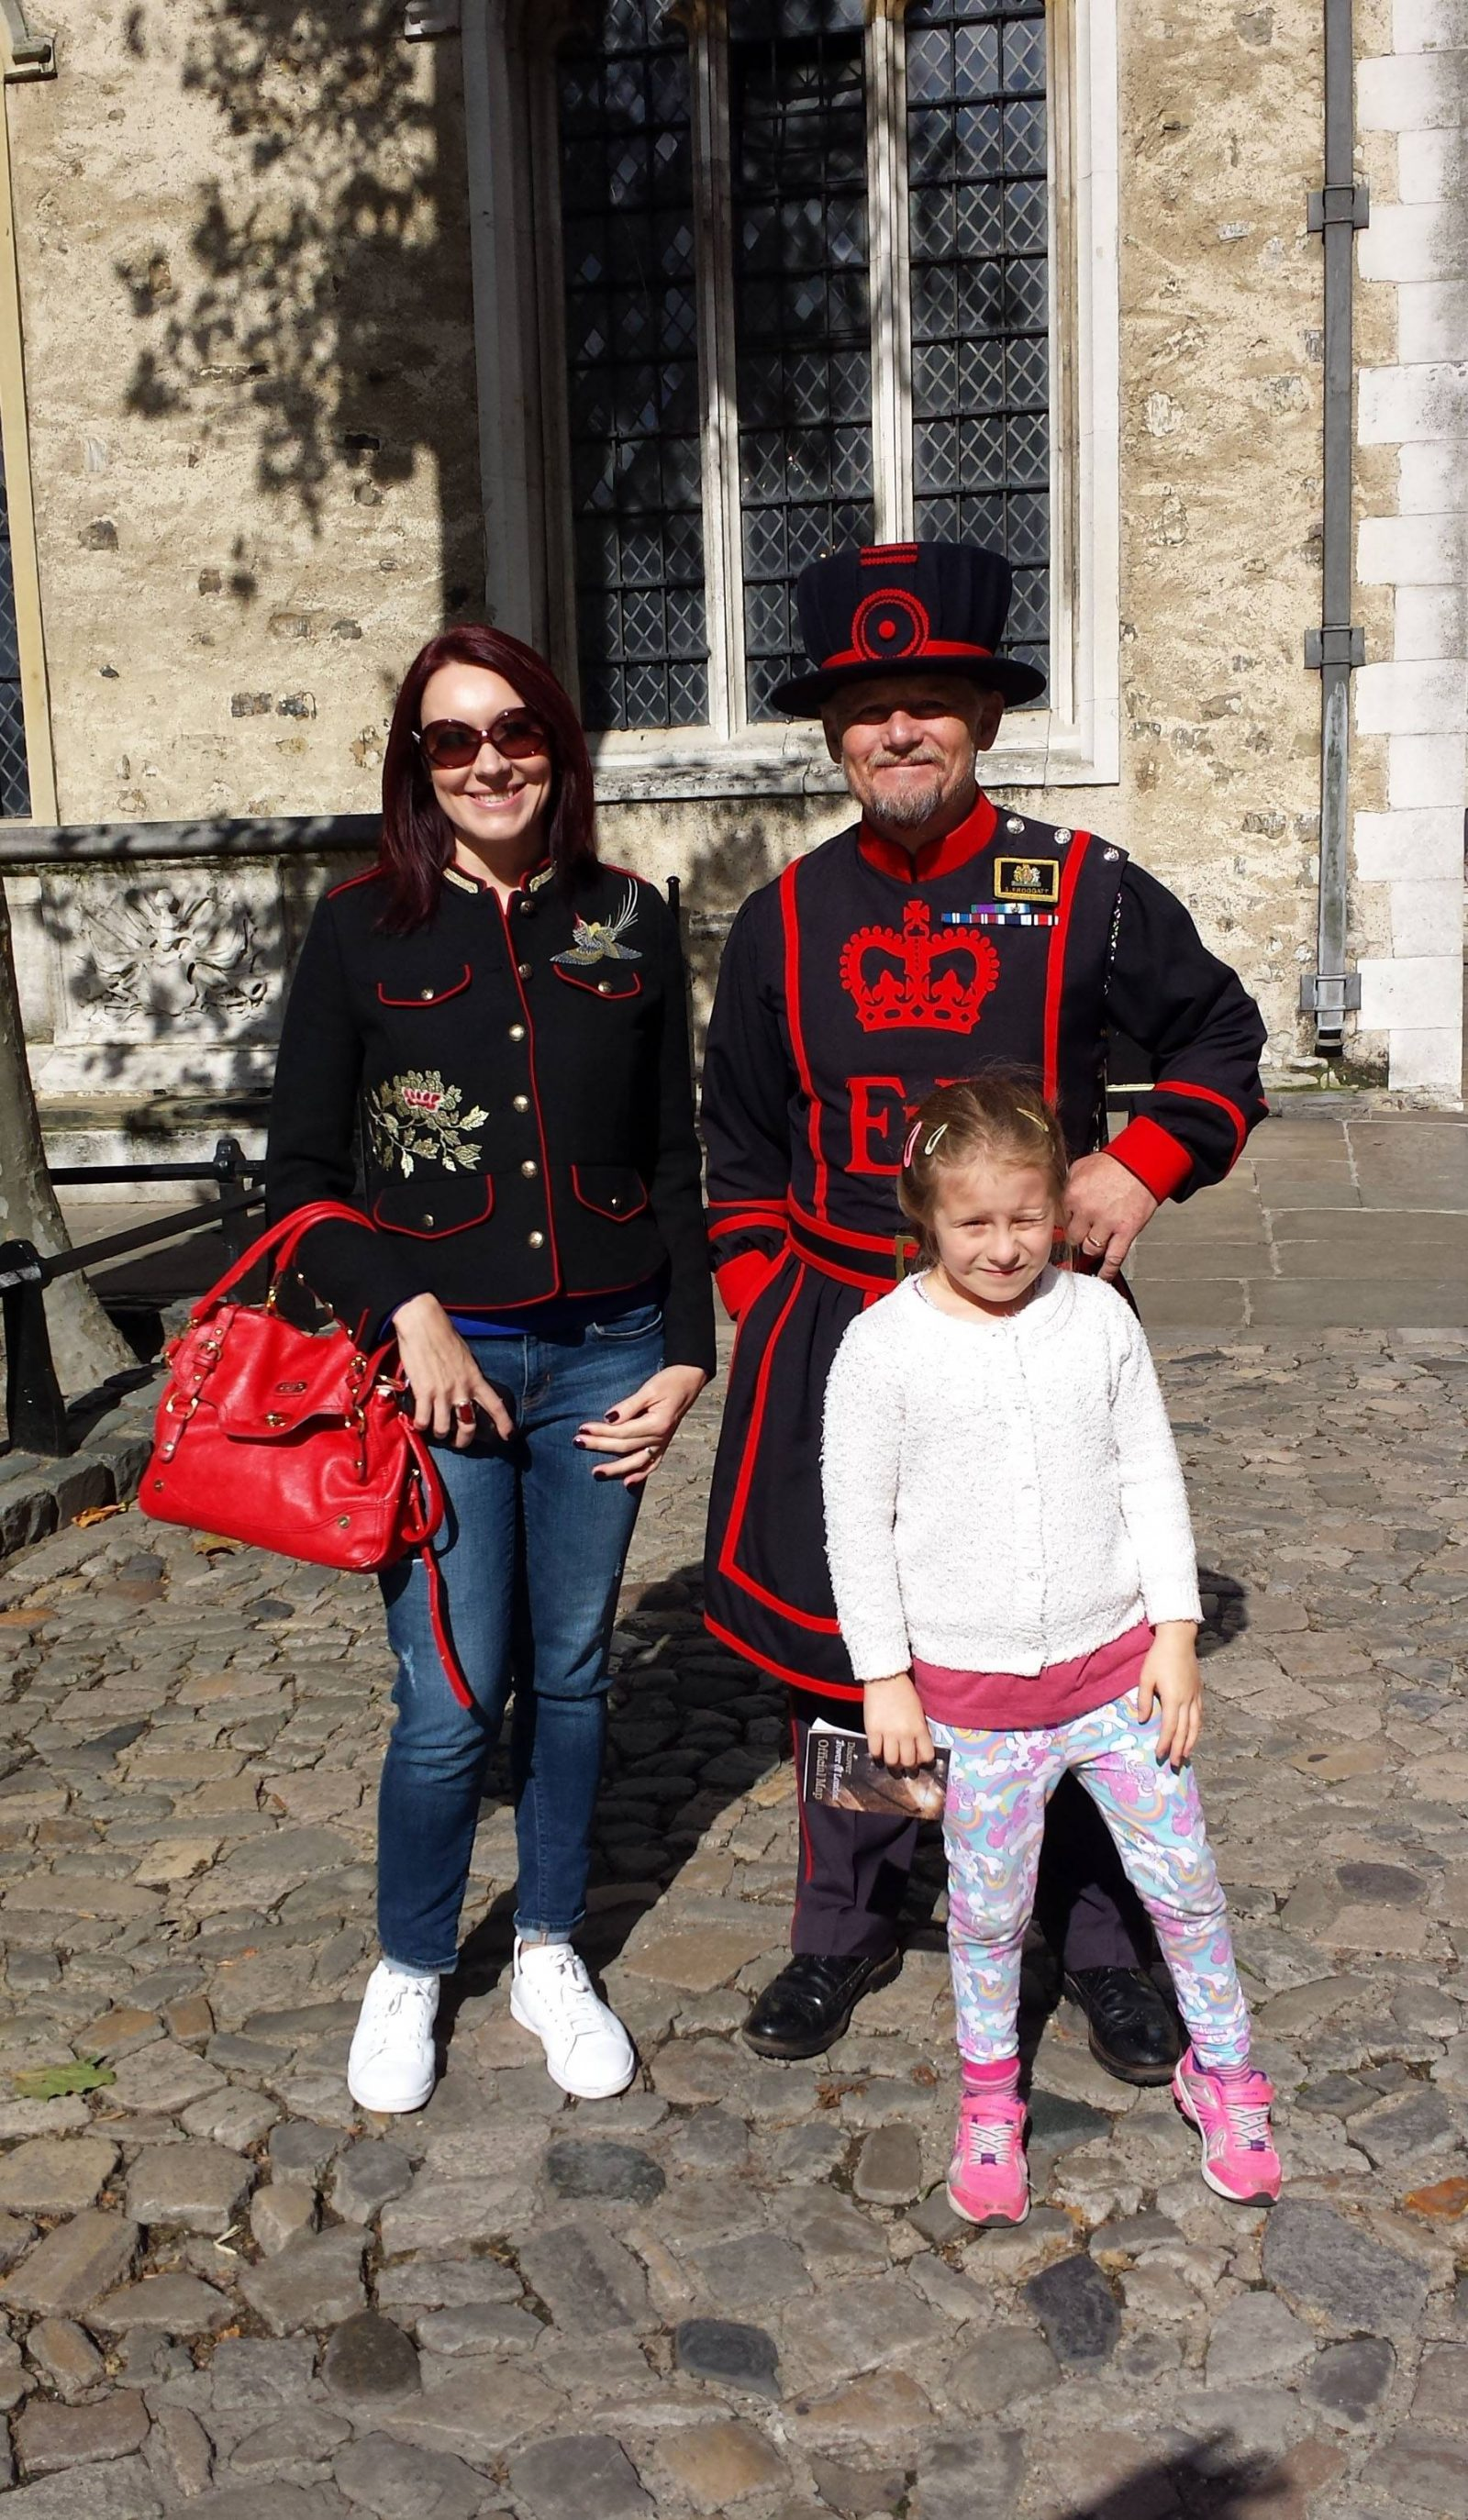 tower-of-london-beefeater